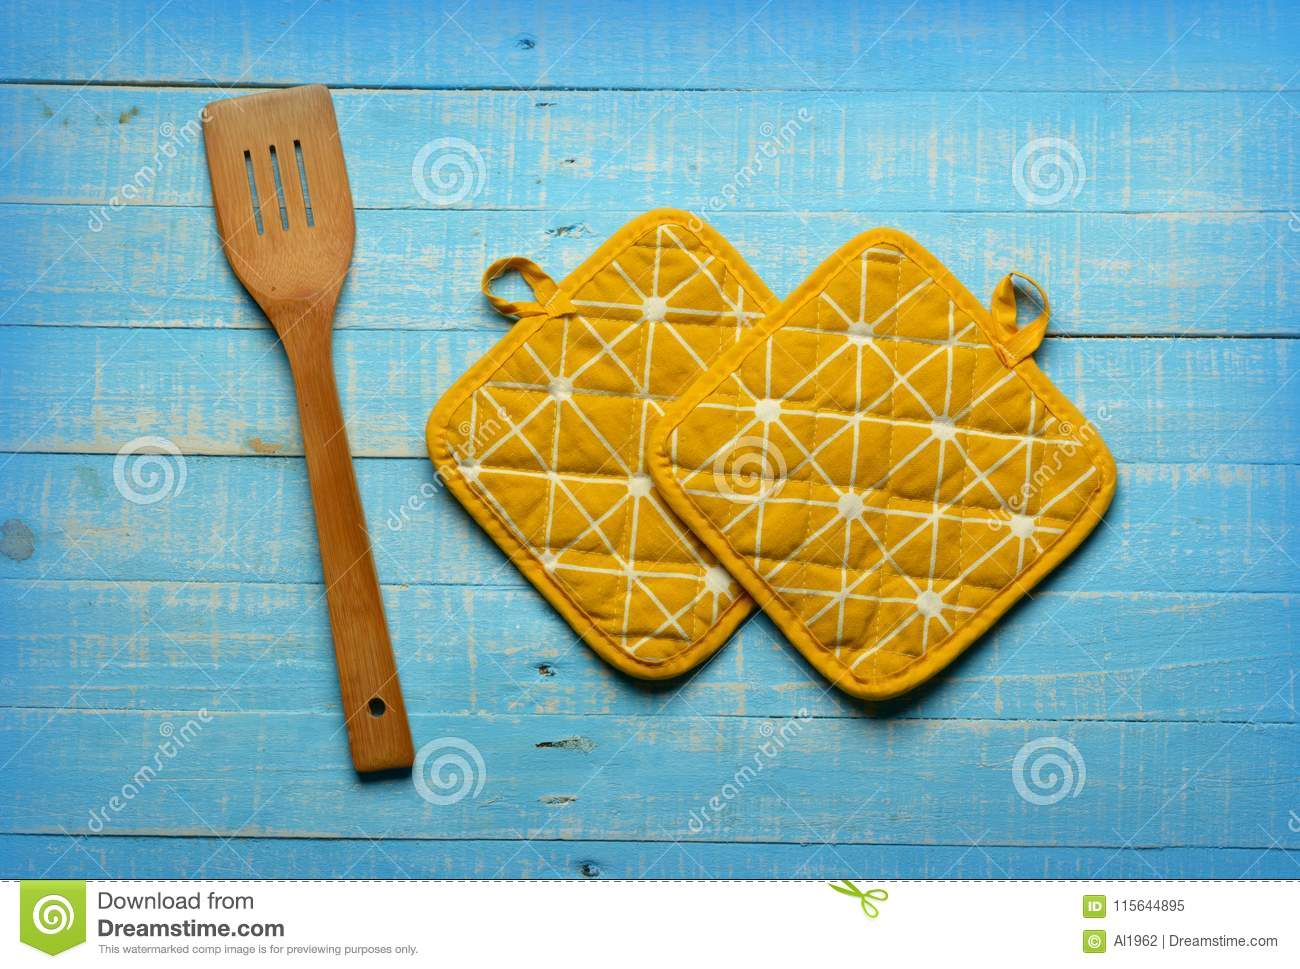 Yellow Kitchen Pot Holders On Blue Table Stock Image - Image of ...